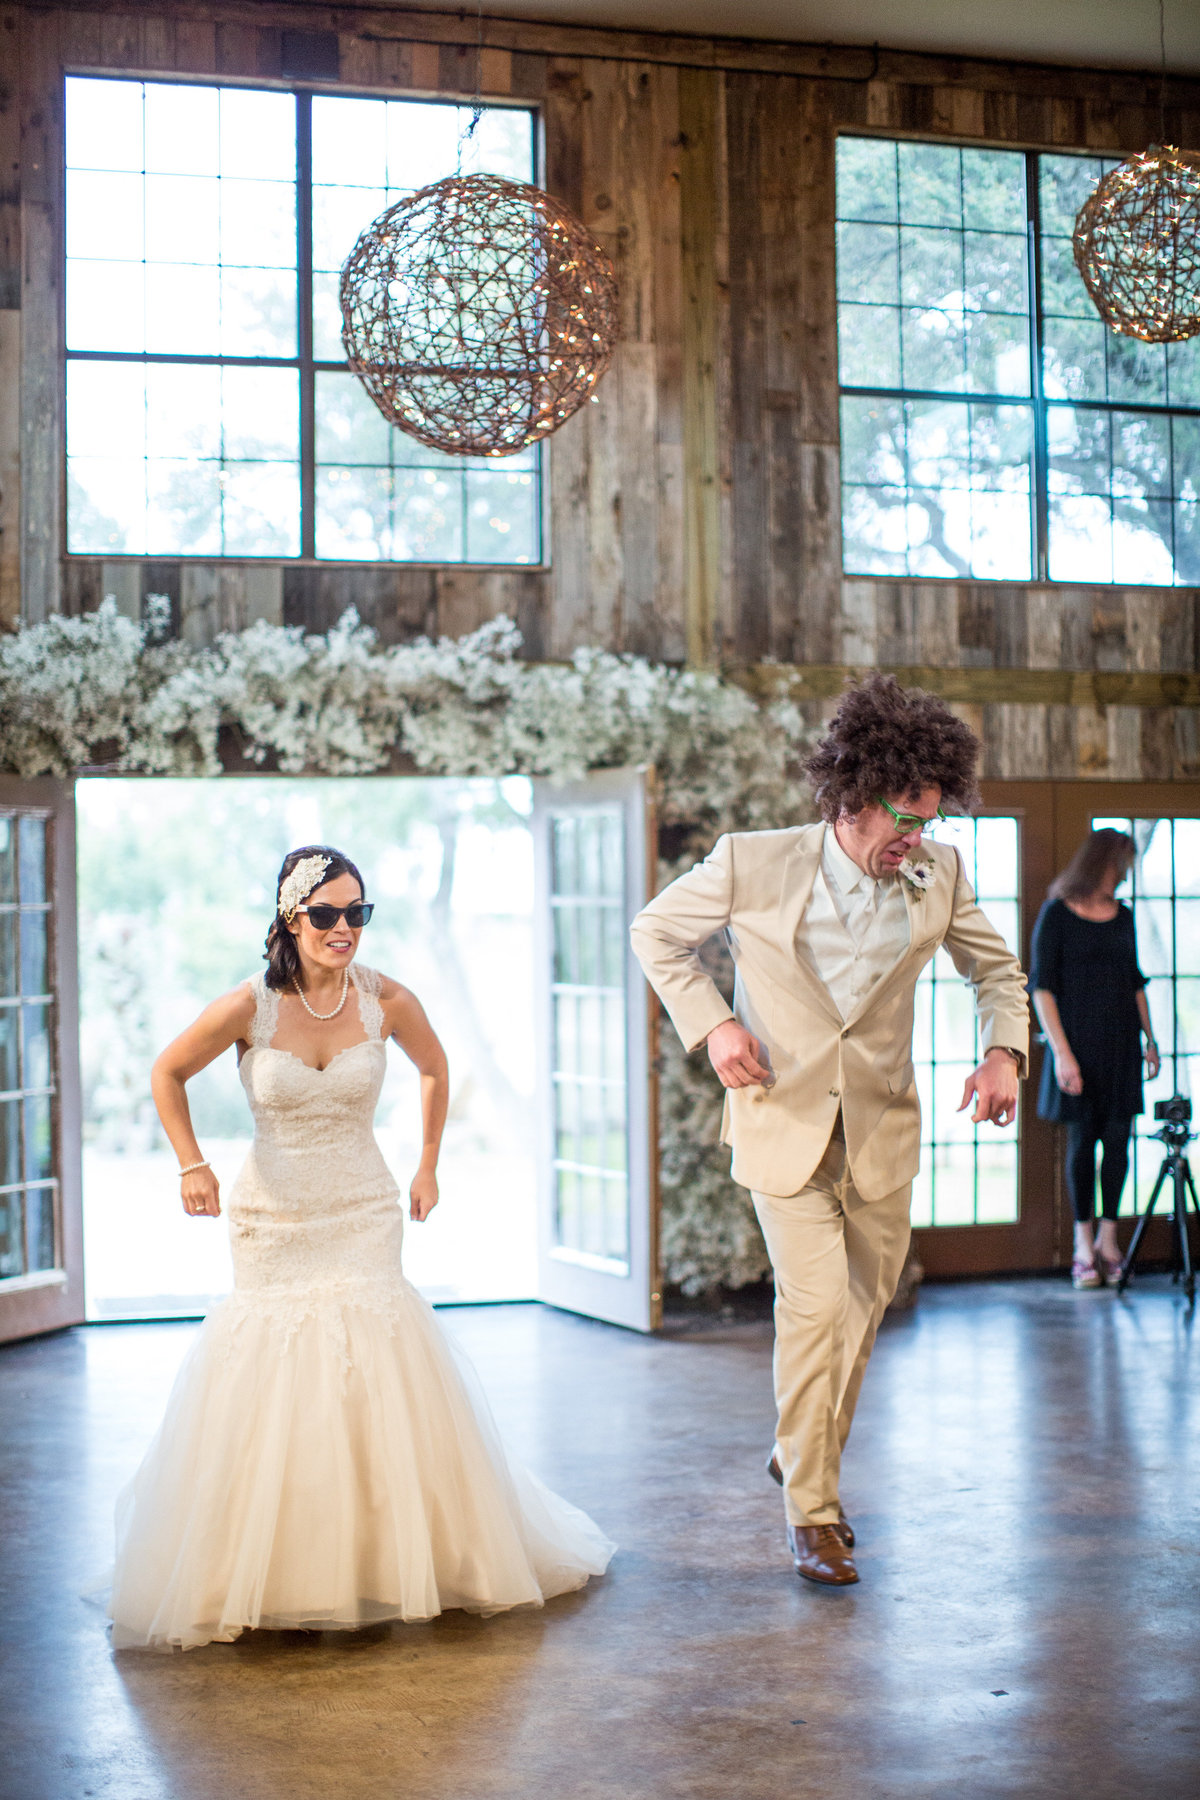 couple dancing to LMFAO for the wedding grand entrance at Vista West Ranch wedding venue